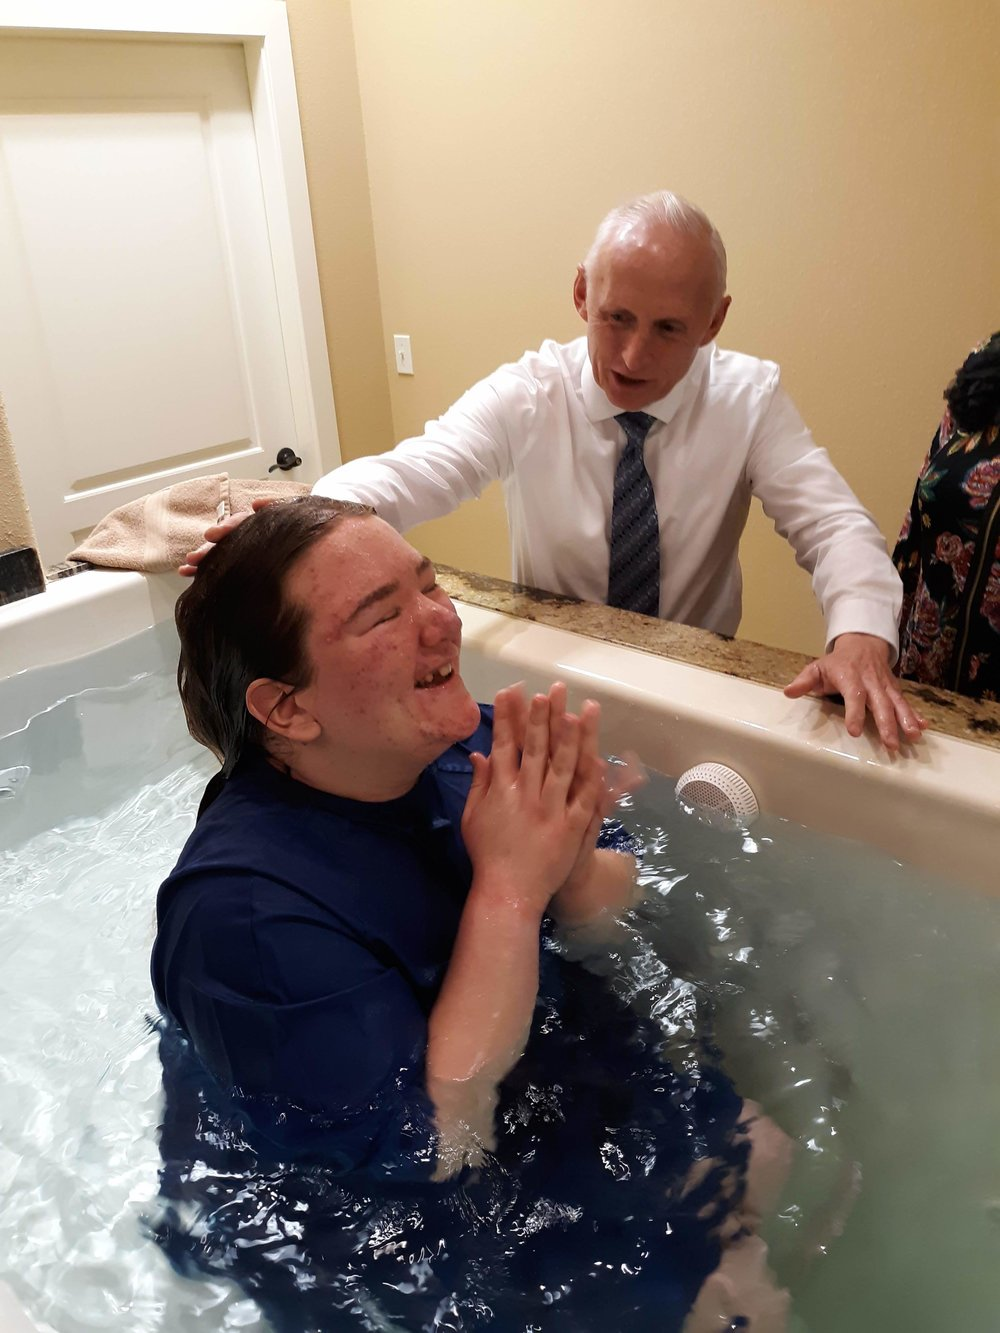 The joy of being washed clean. Thank you, Jesus!